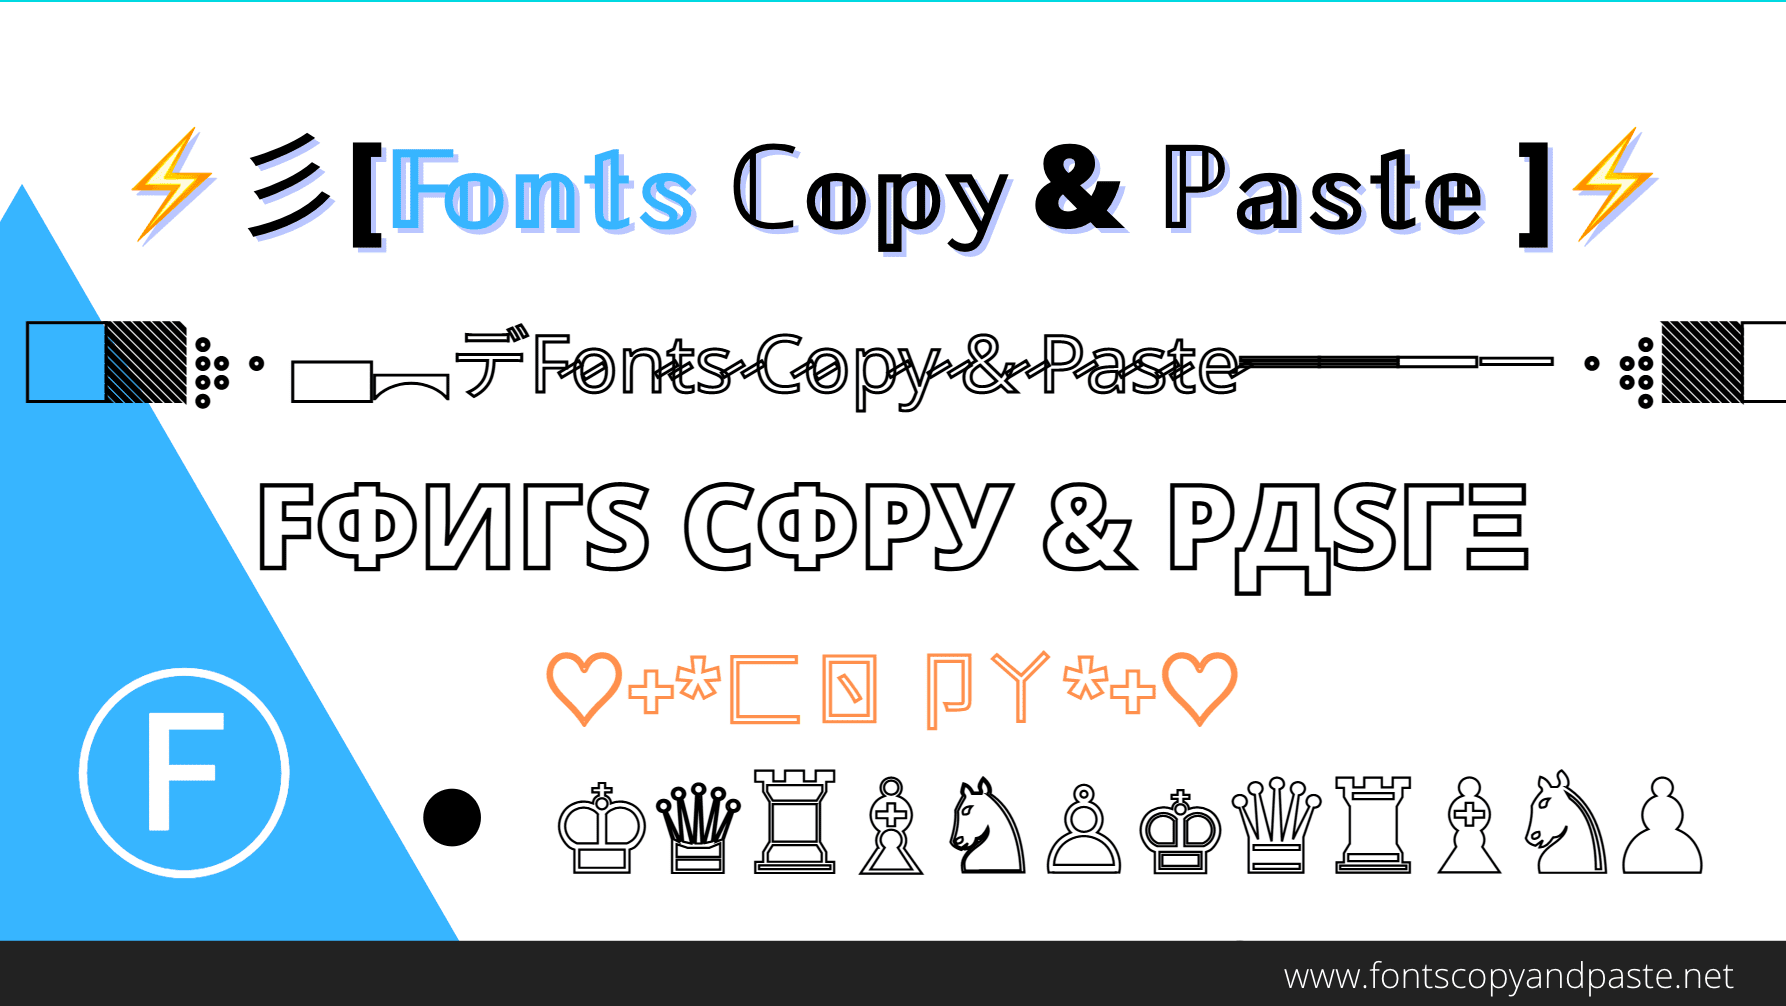 Fonts Copy and Paste